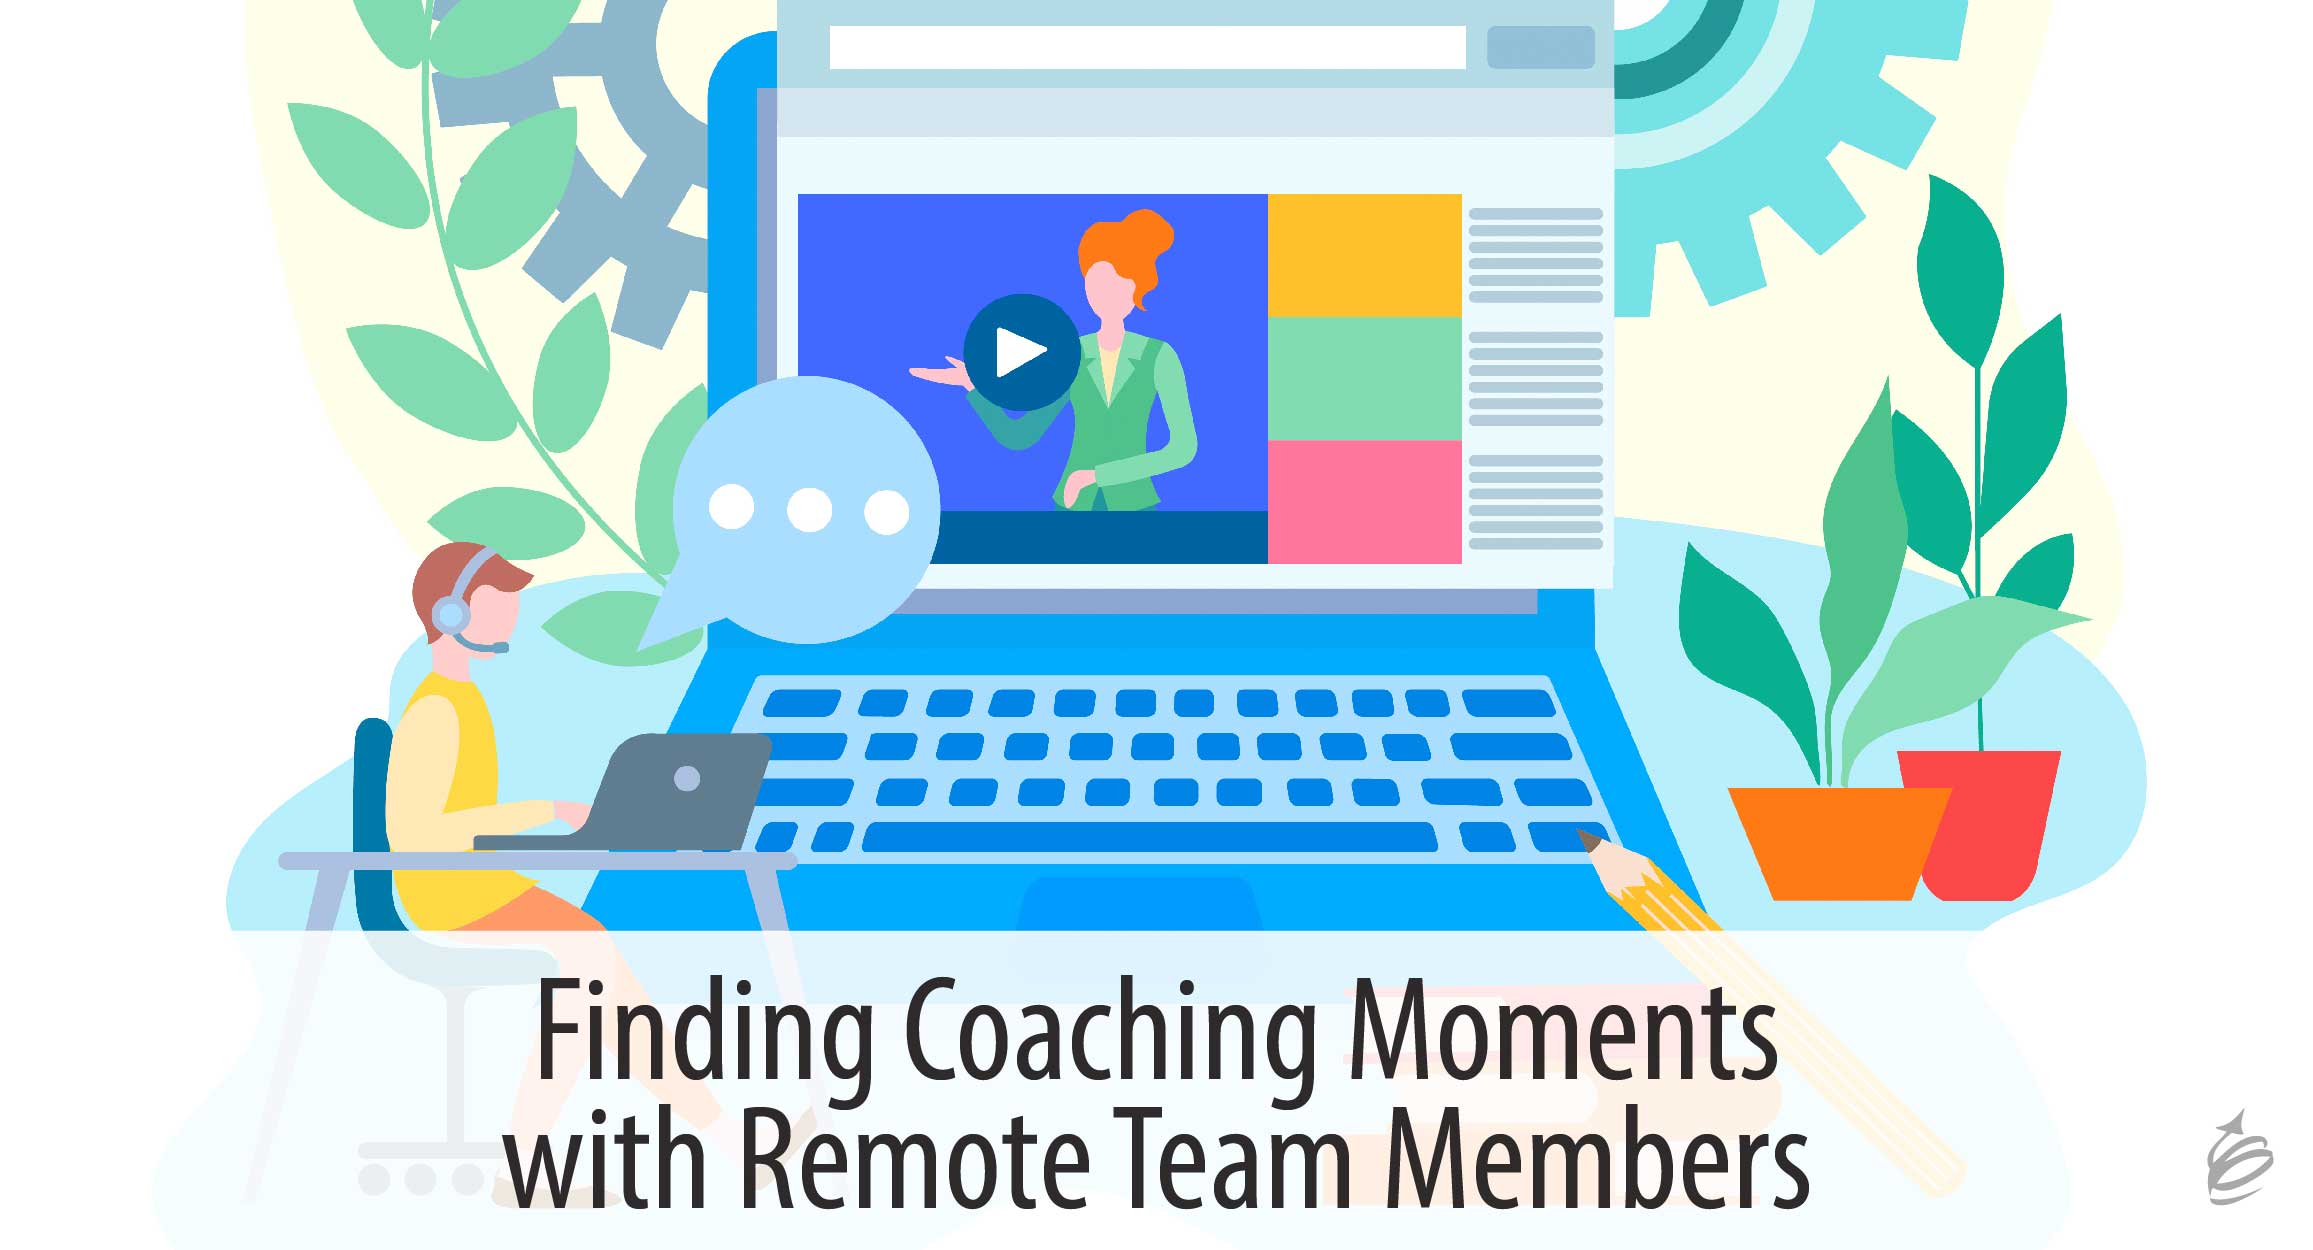 Coaching remotely